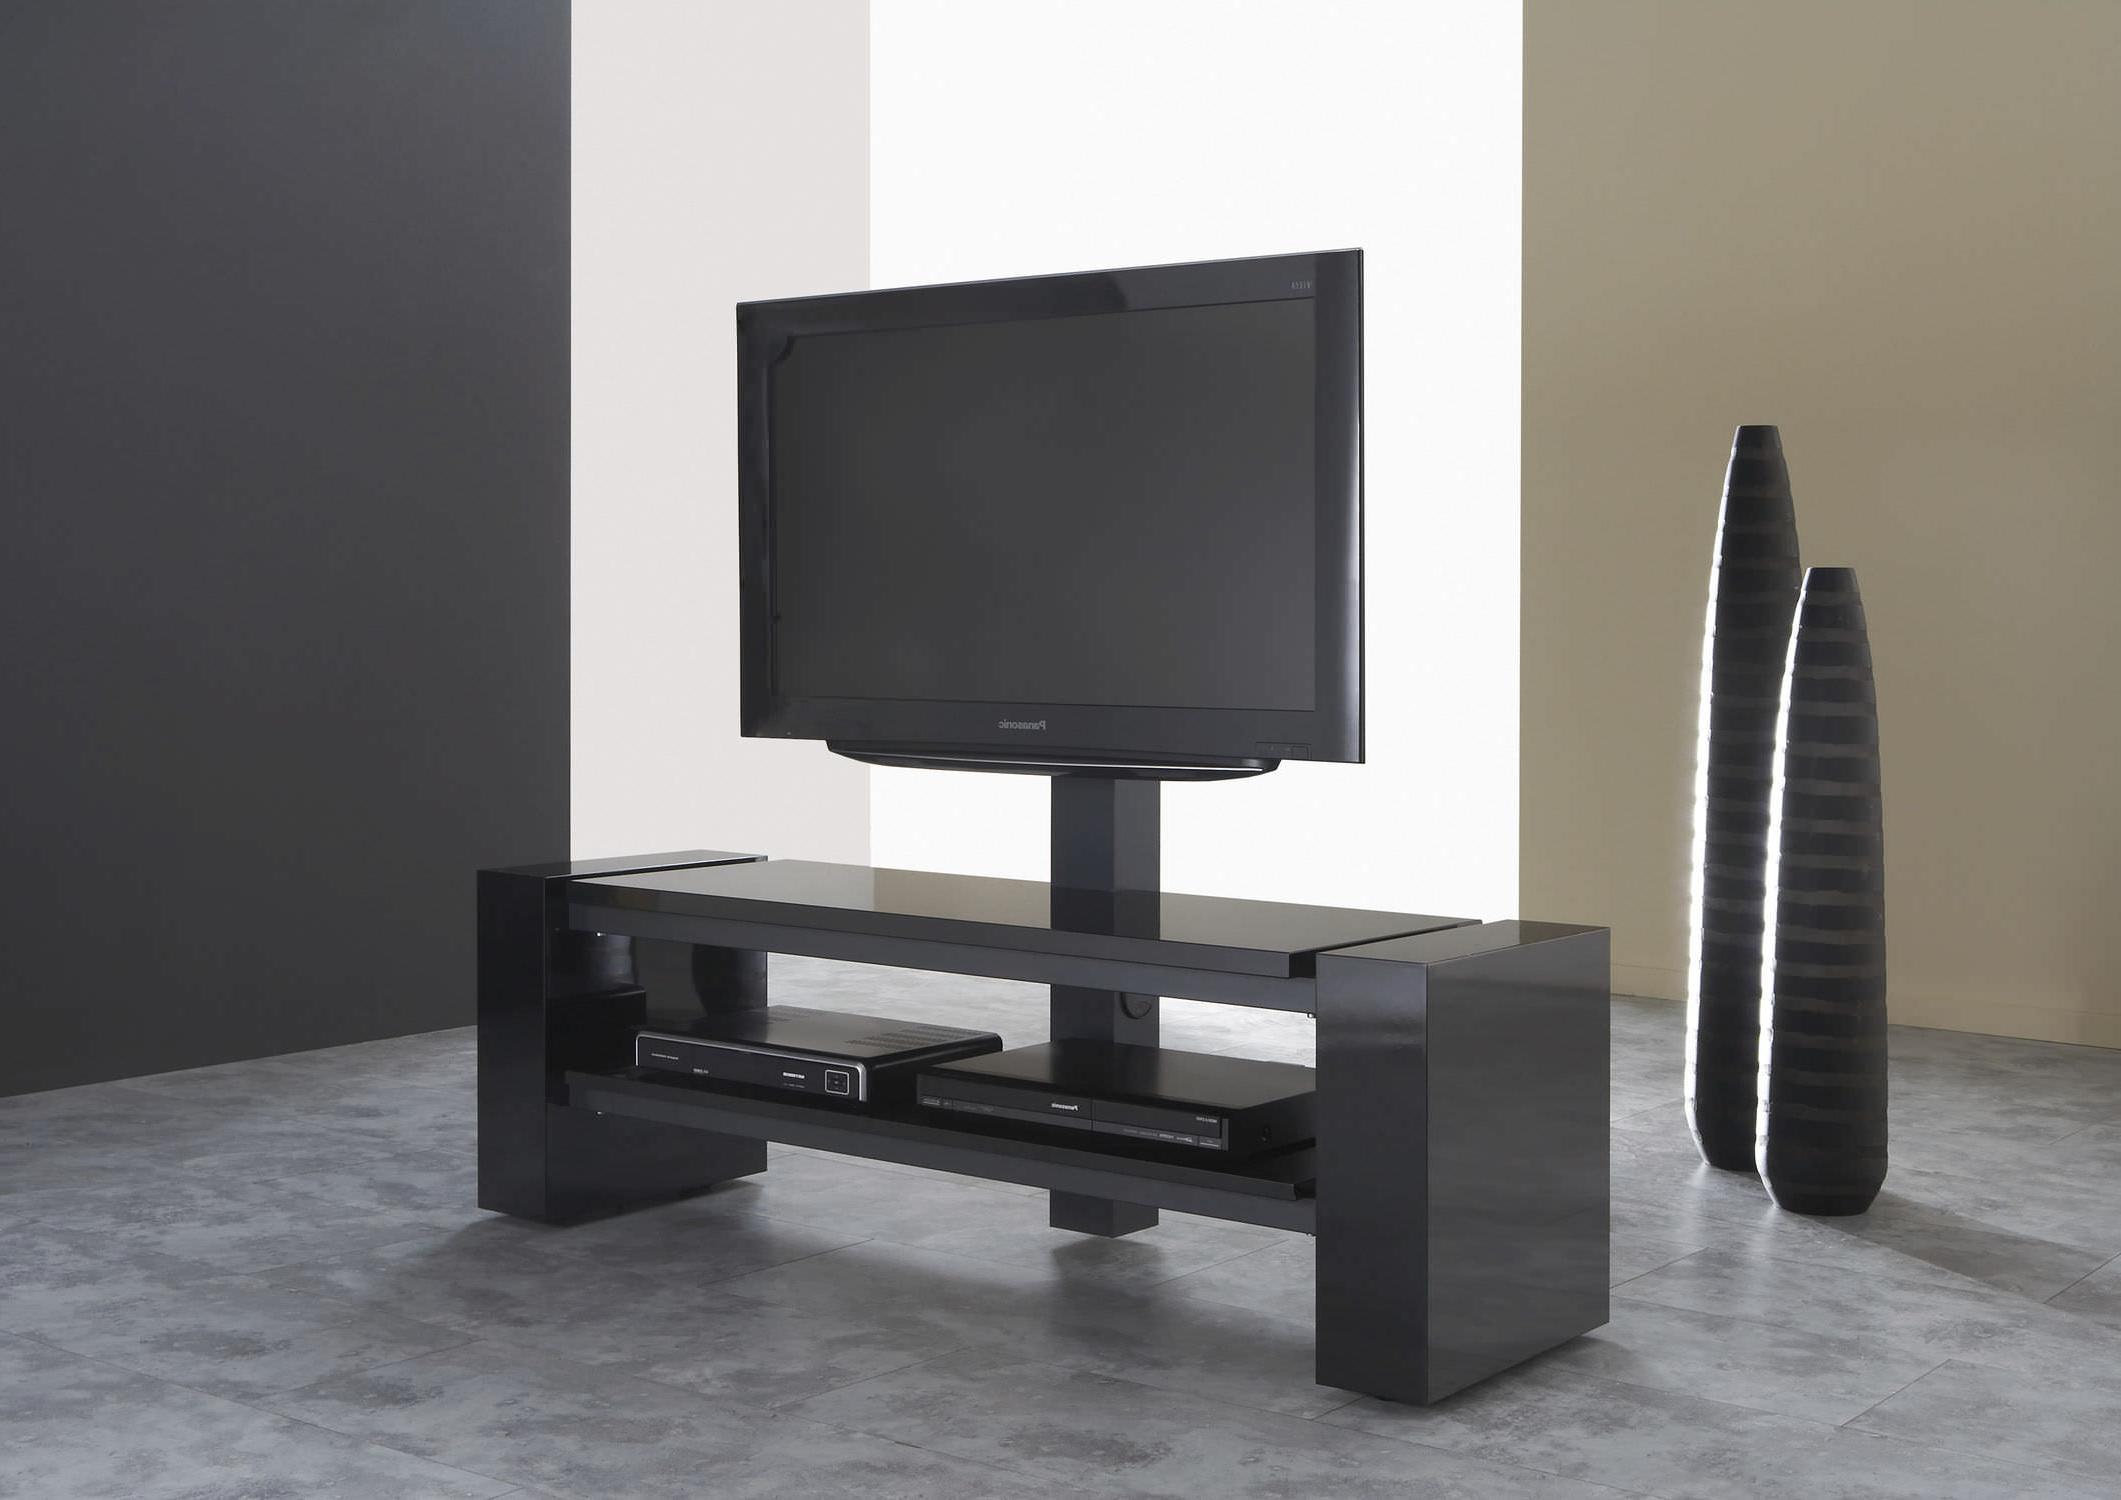 2018 Contemporary Tv Cabinets For Flat Screens Intended For Contemporary Tv Cabinet / With Screen Lift / Wooden / Lacquered Wood (View 3 of 20)